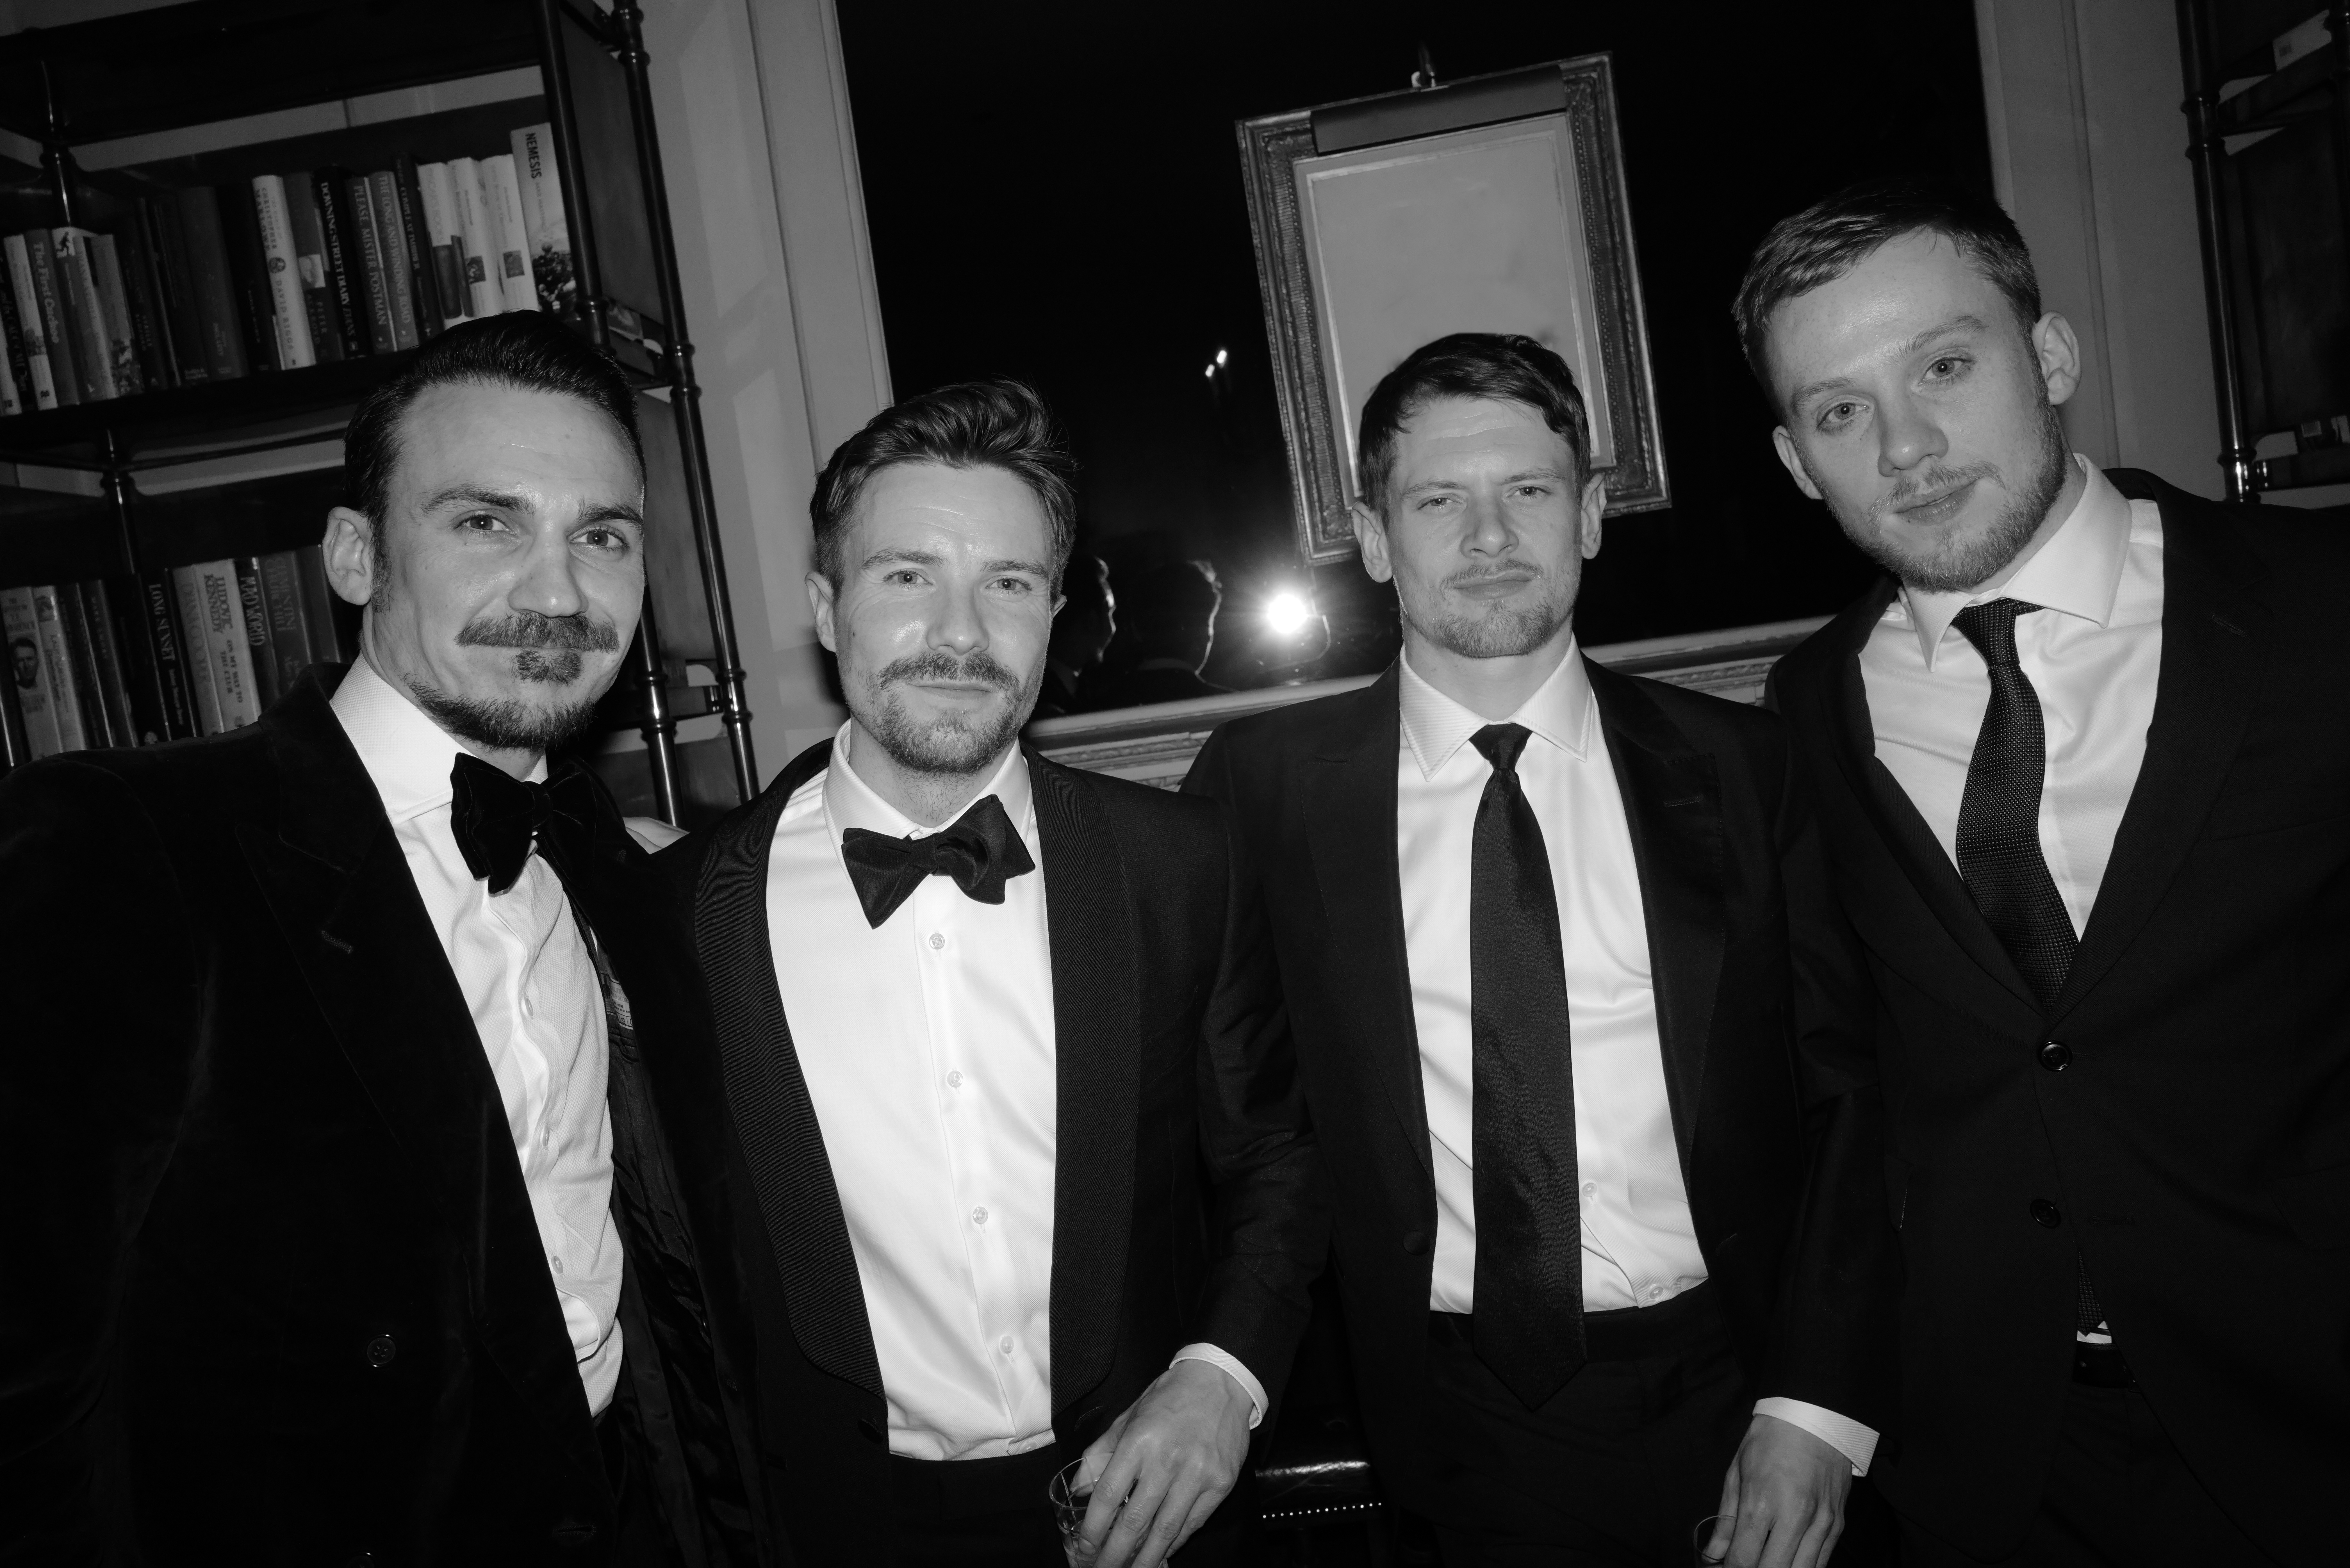 Henry Lloyd Hughes, Joe Dempsie, Jack O'Connell and Joe Cole at the Dunhill pre-BAFTA party